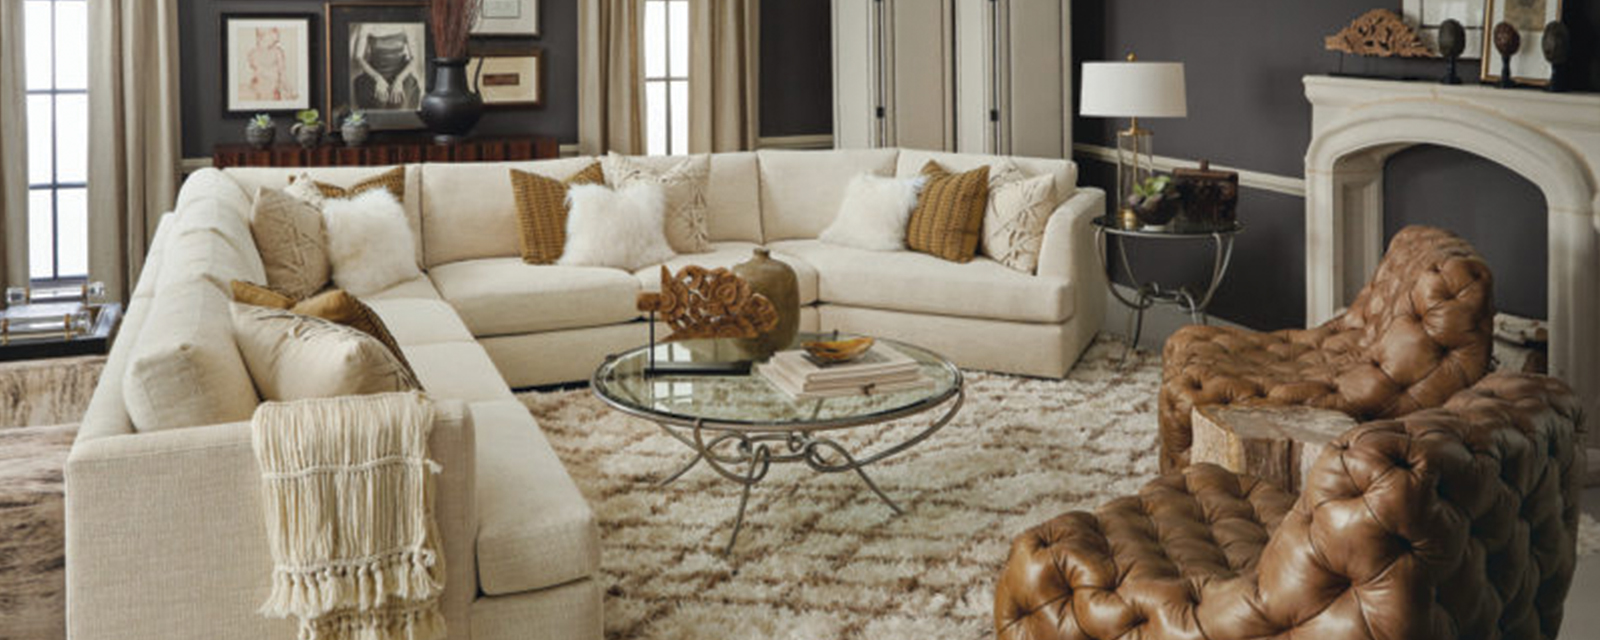 Add a Touch of Glamour with Calgary Living Room Chairs